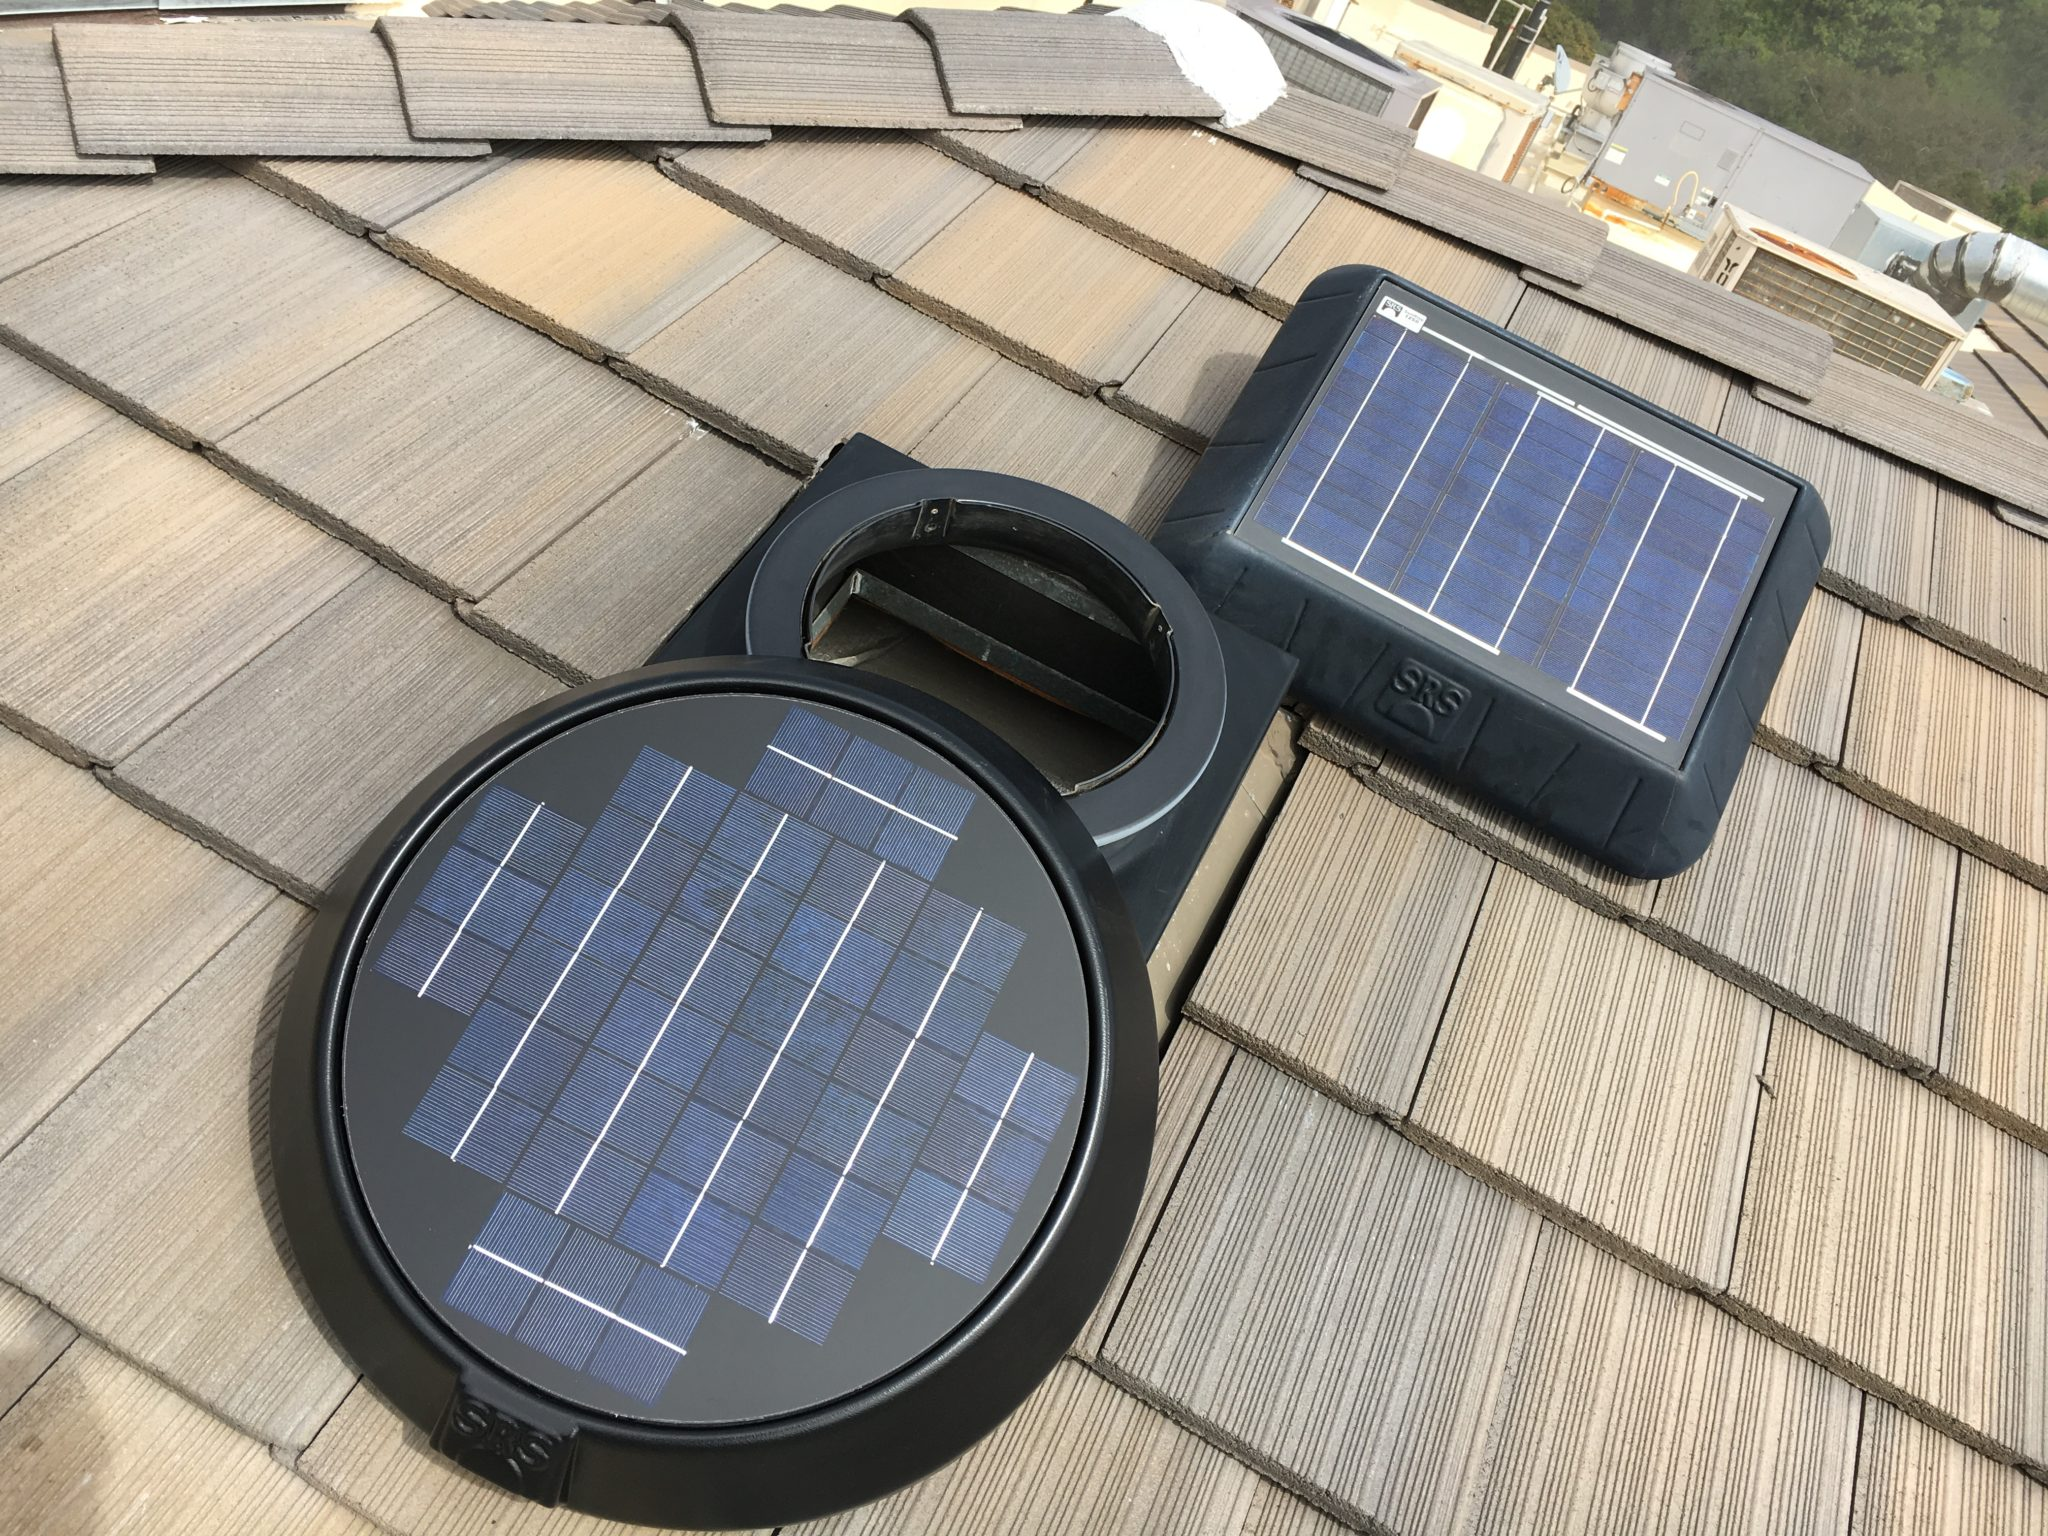 Solar Attic Fans The Original Solar Attic Fan By Sunrise